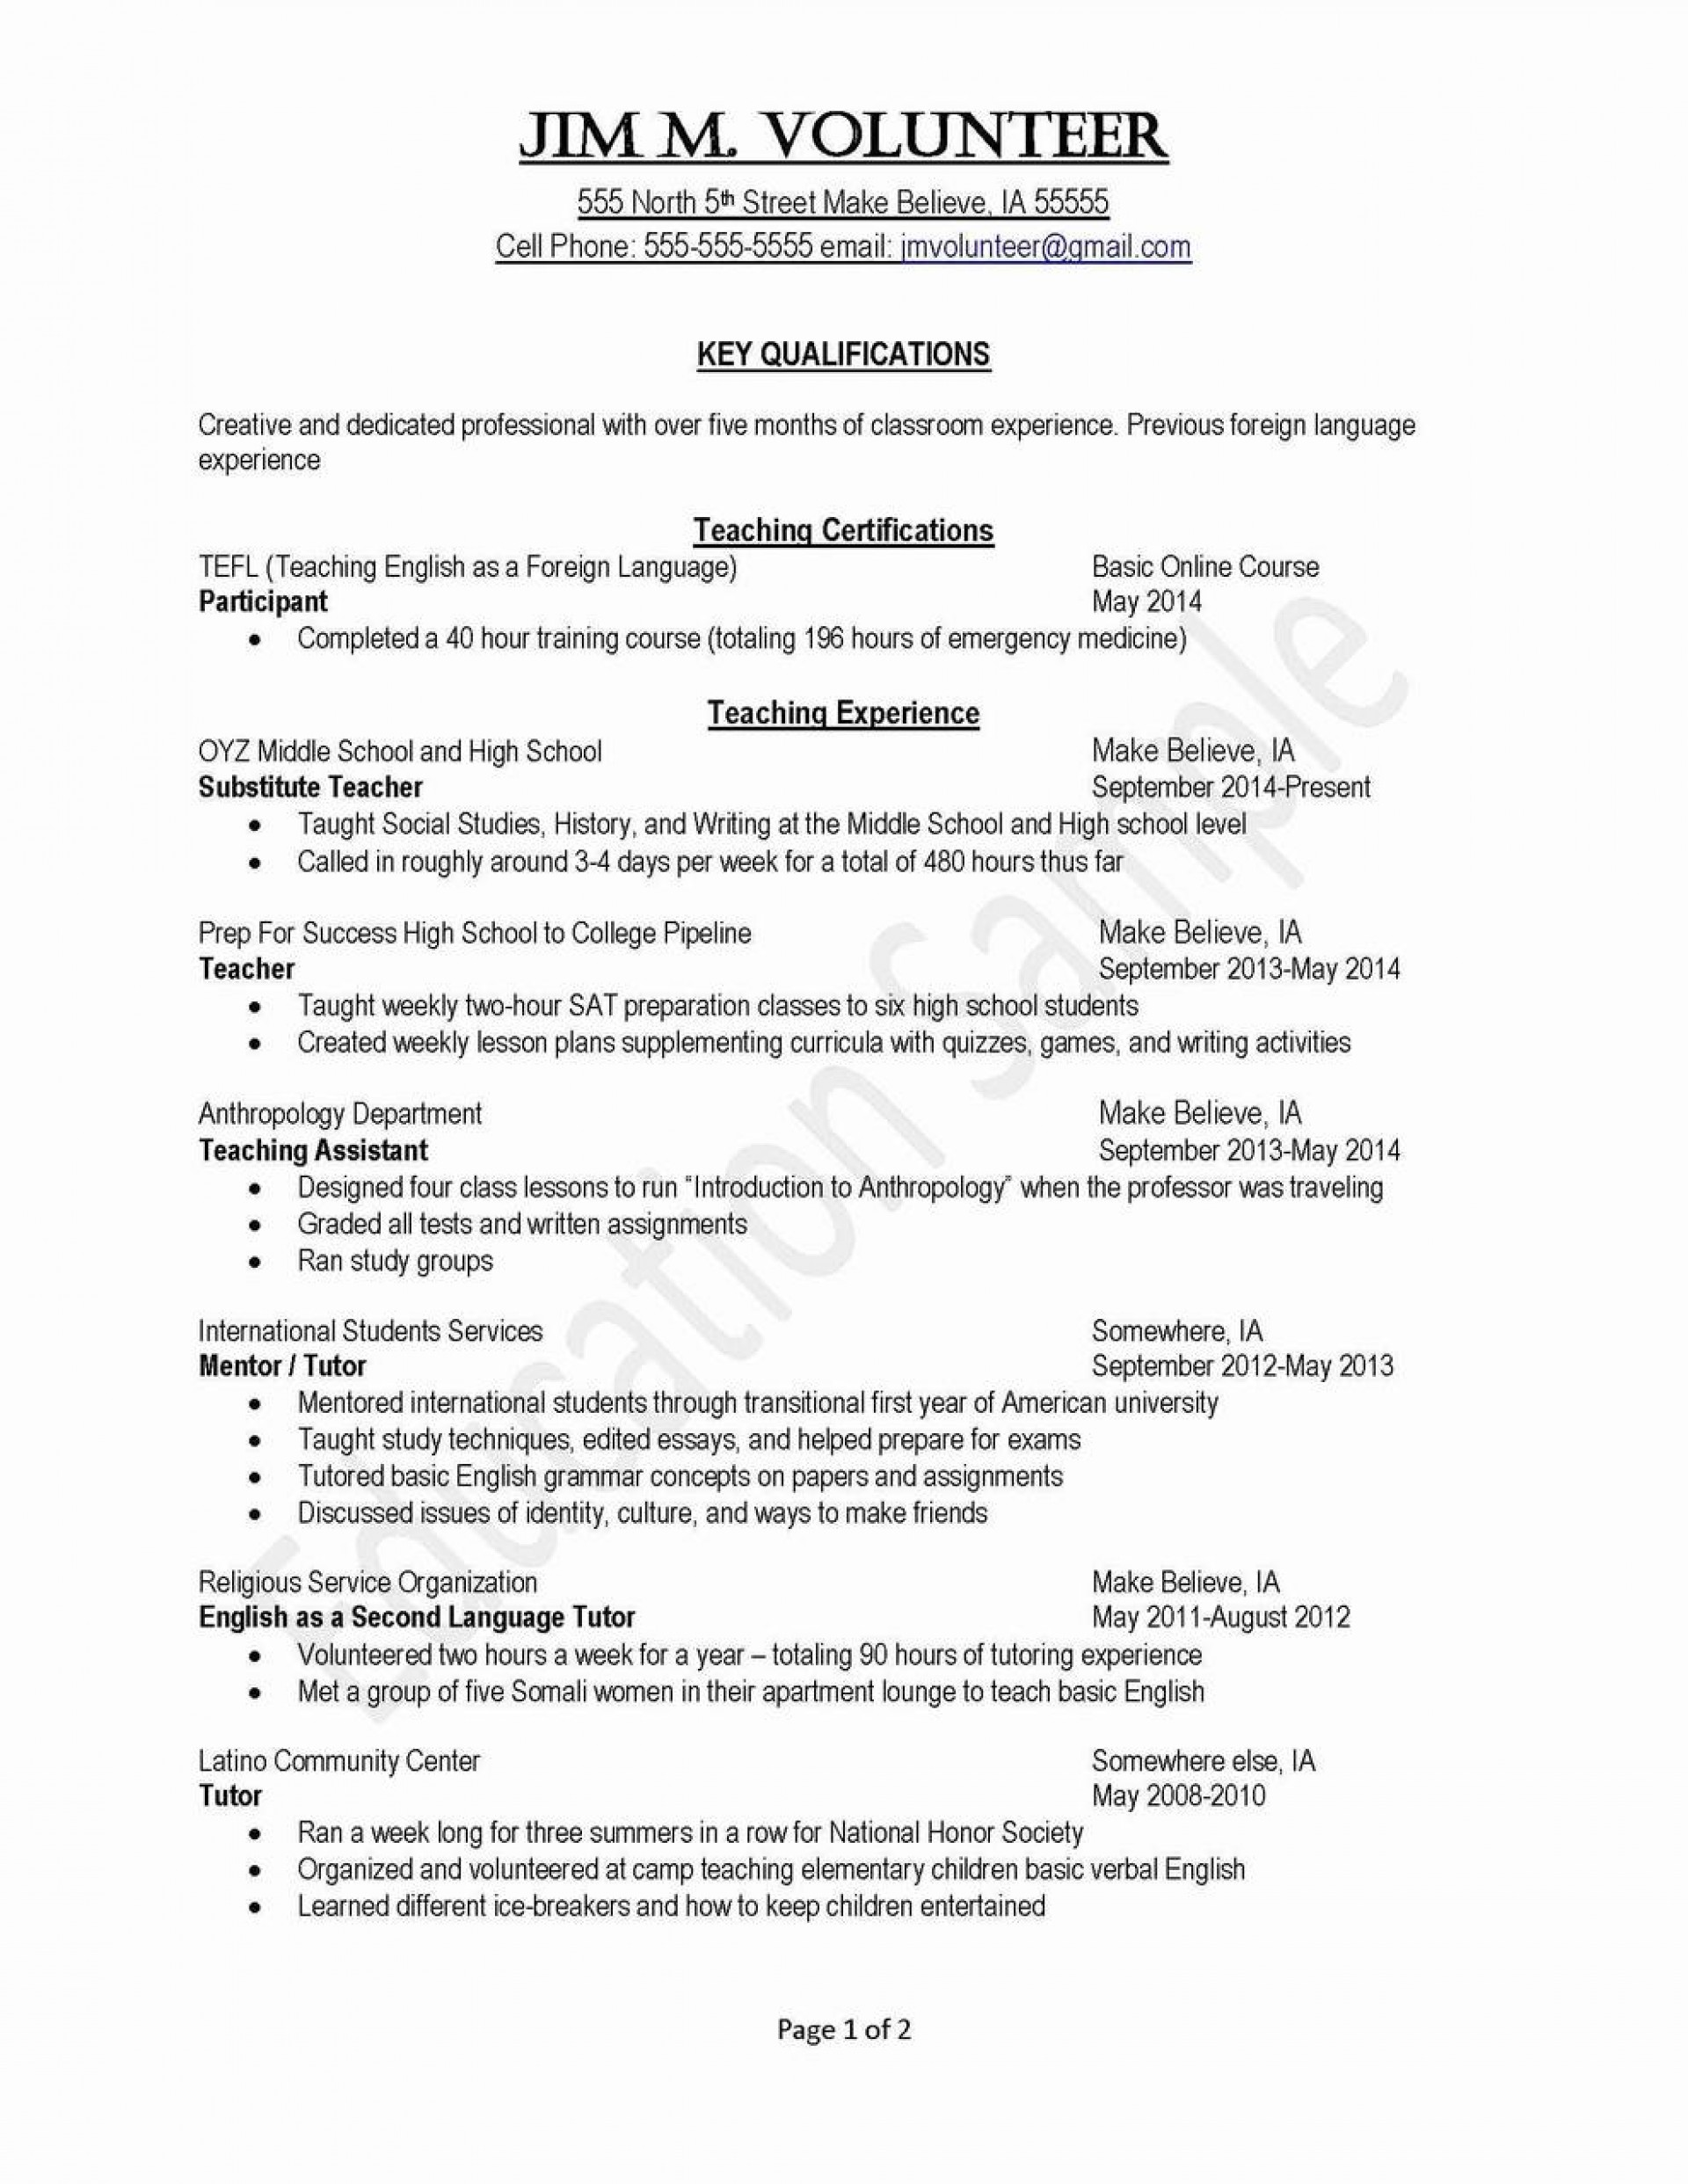 007 Private Tutor Resume Sample On College Essay Long Island English Amazing Best Collection Tutoring Rates Bay Area Tutorial Chicago Nj Price Near Me San Diego Cost Unique Free Toronto 1920